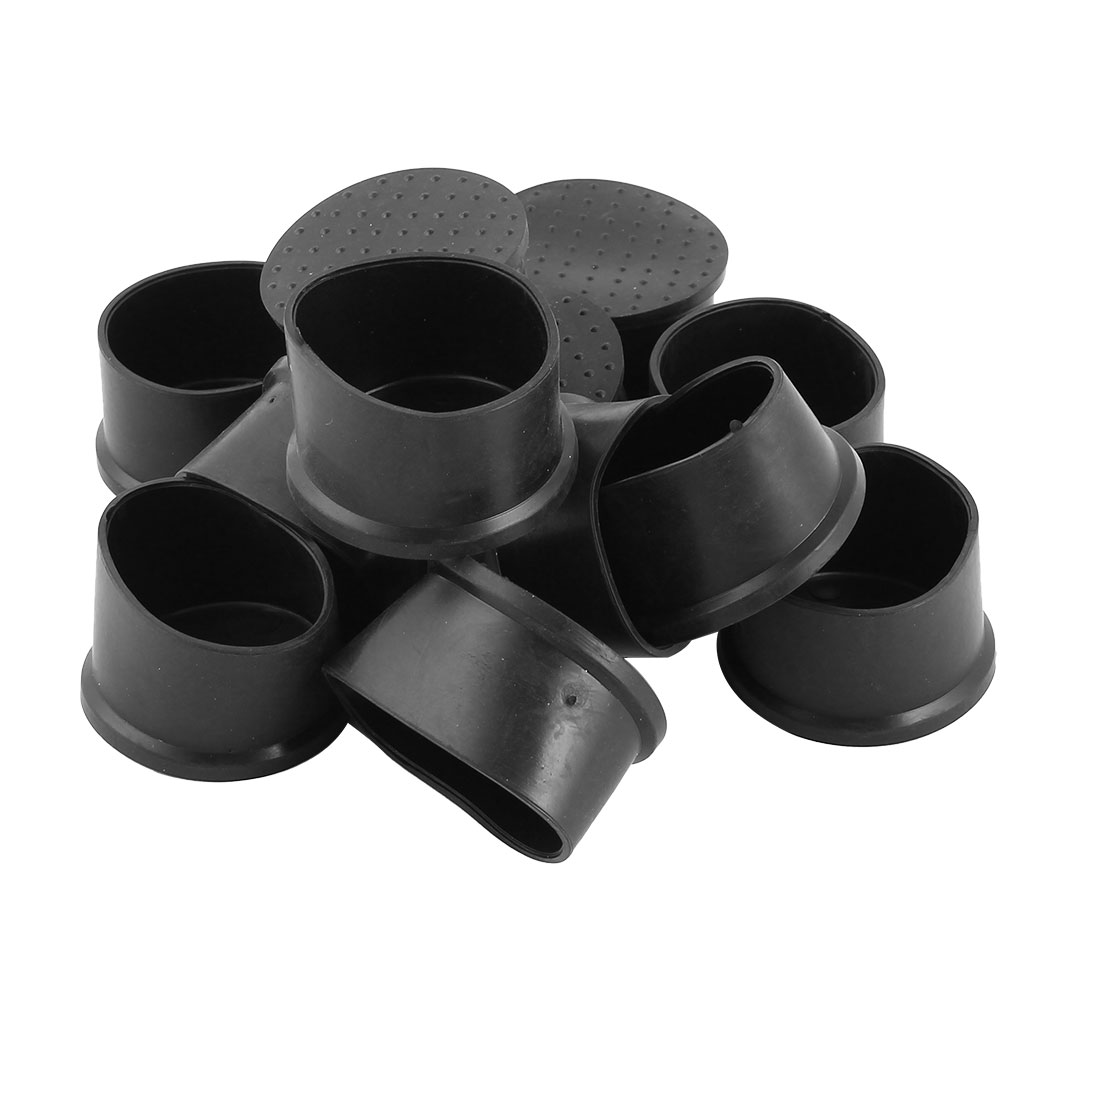 Home Rubber Furniture Chair Table Foot Cover Pad Caps Black 50mm Hole Dia 12 Pcs